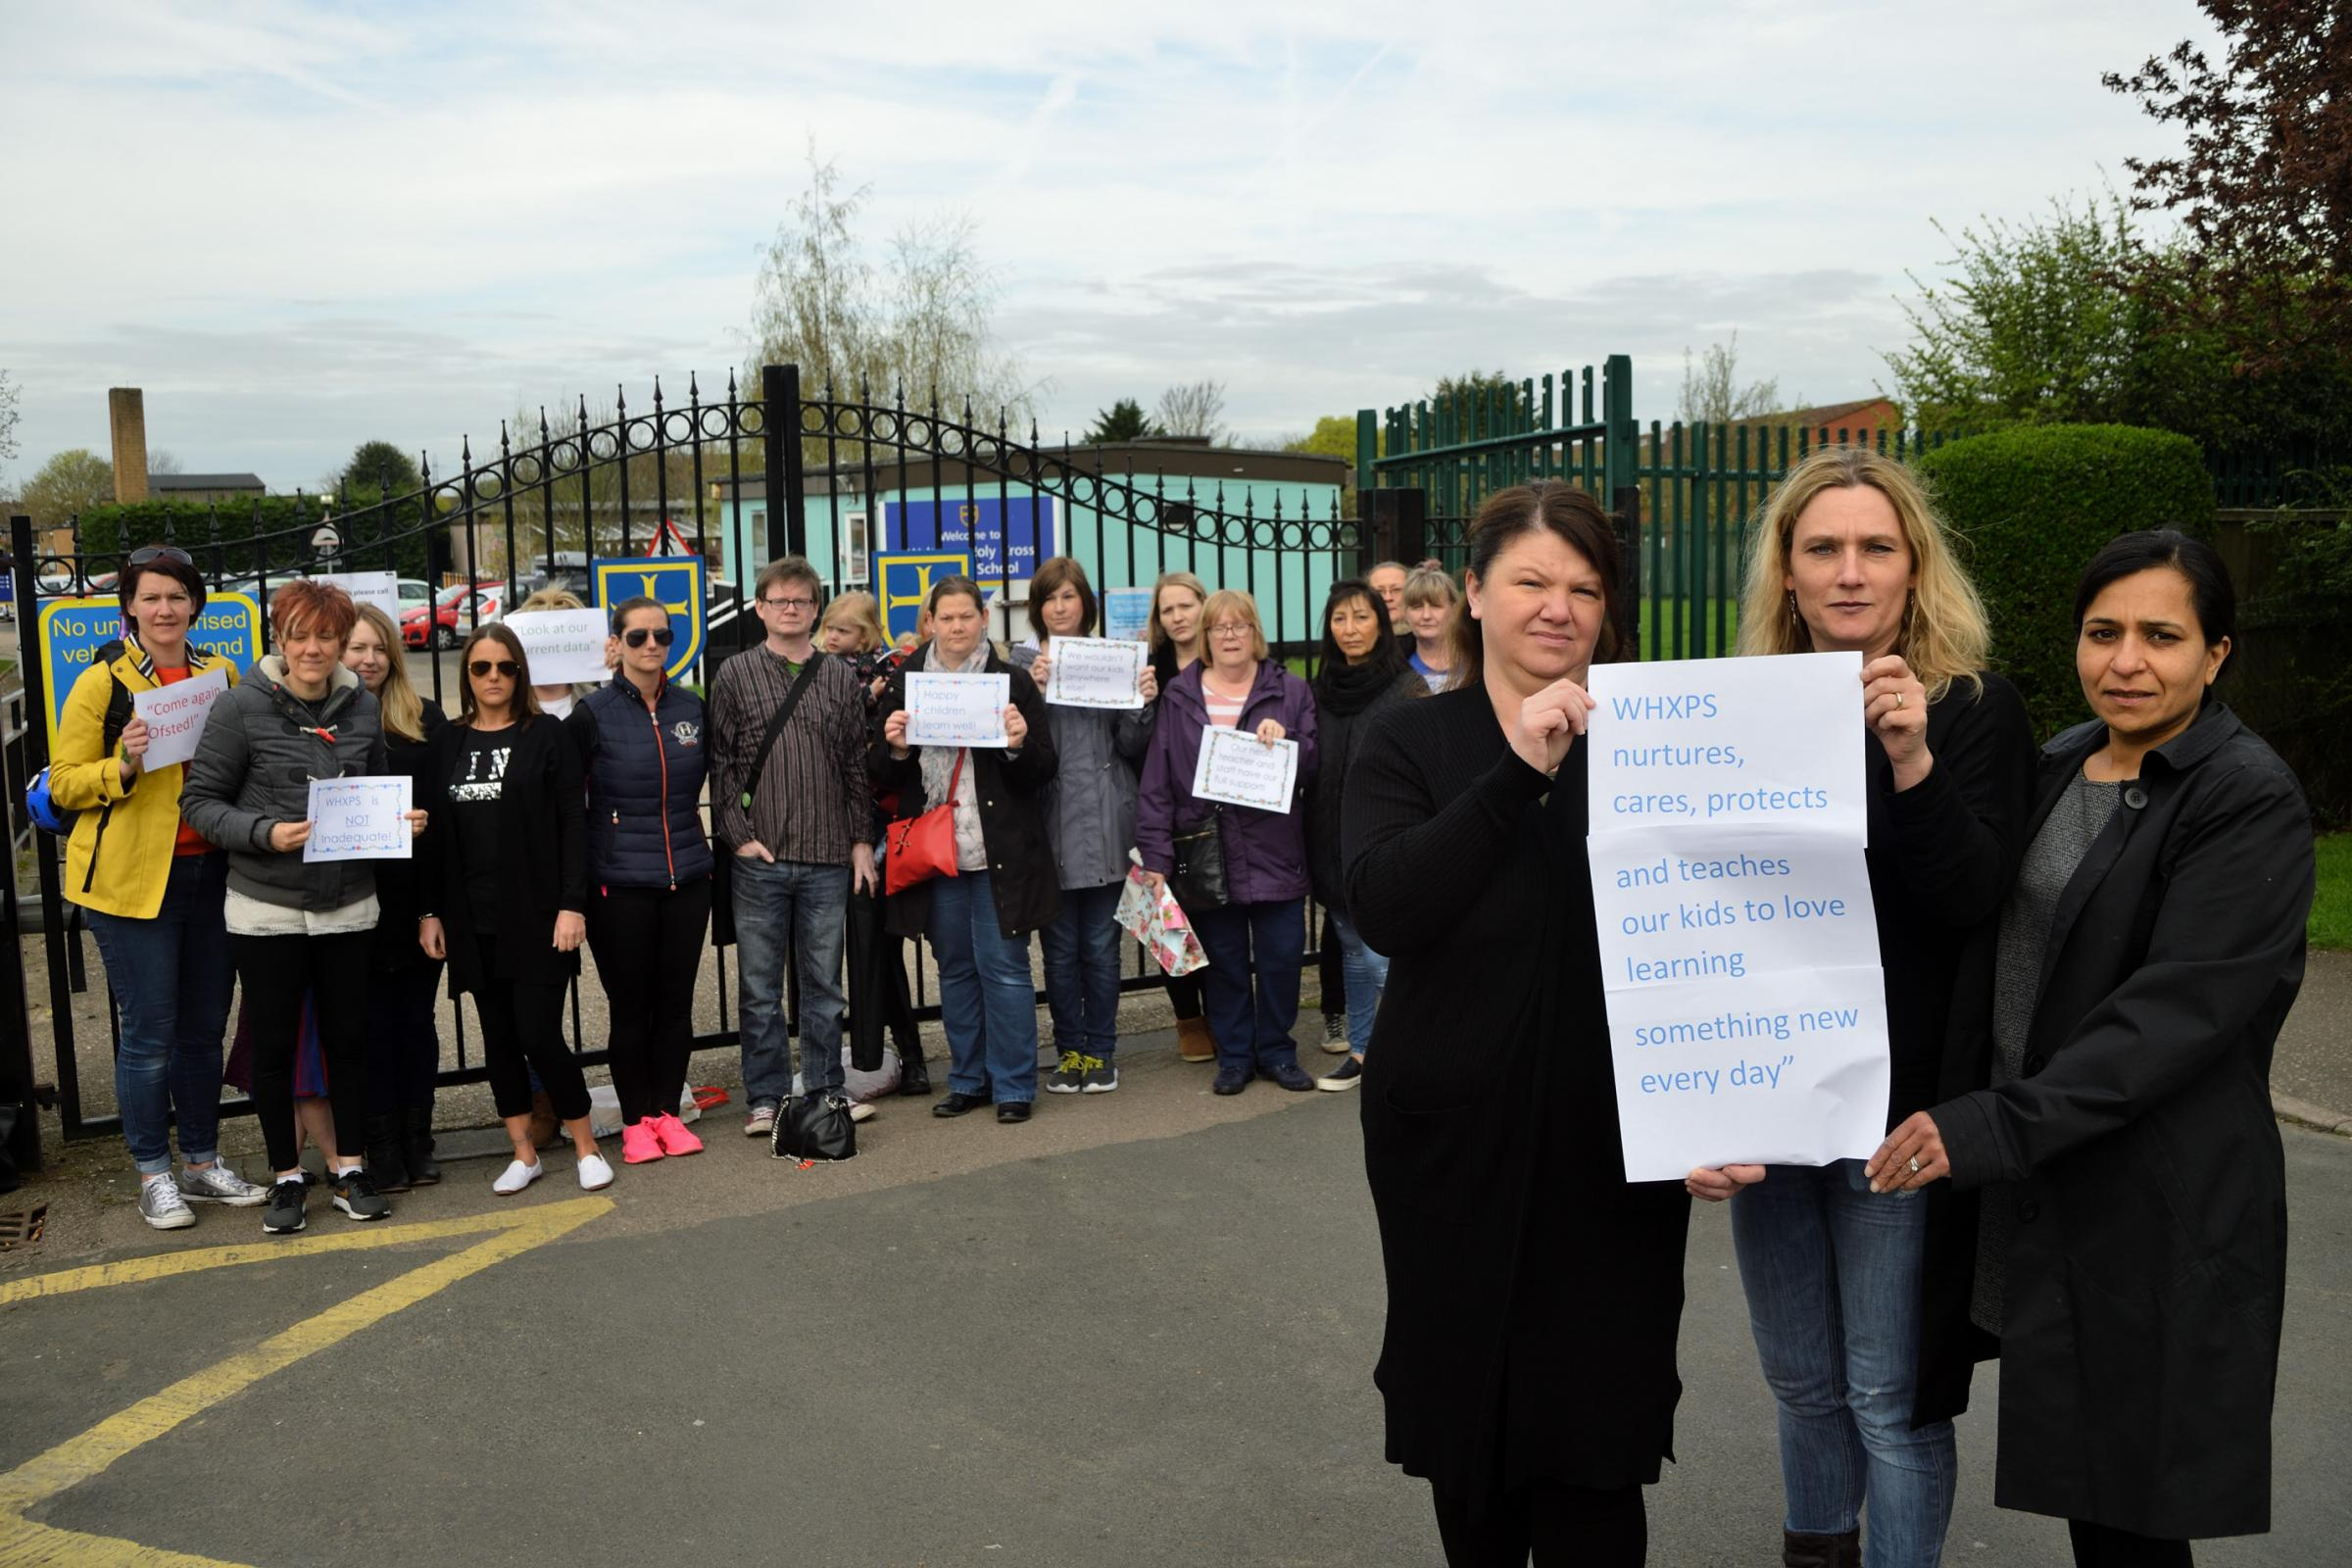 Parents and campaigners are angry about a recent bad Ofsted report and the threat of Waltham Holy Cross school becoming an academy. Waltham Abbey. Essex. (17/4/2018) EL91975_01